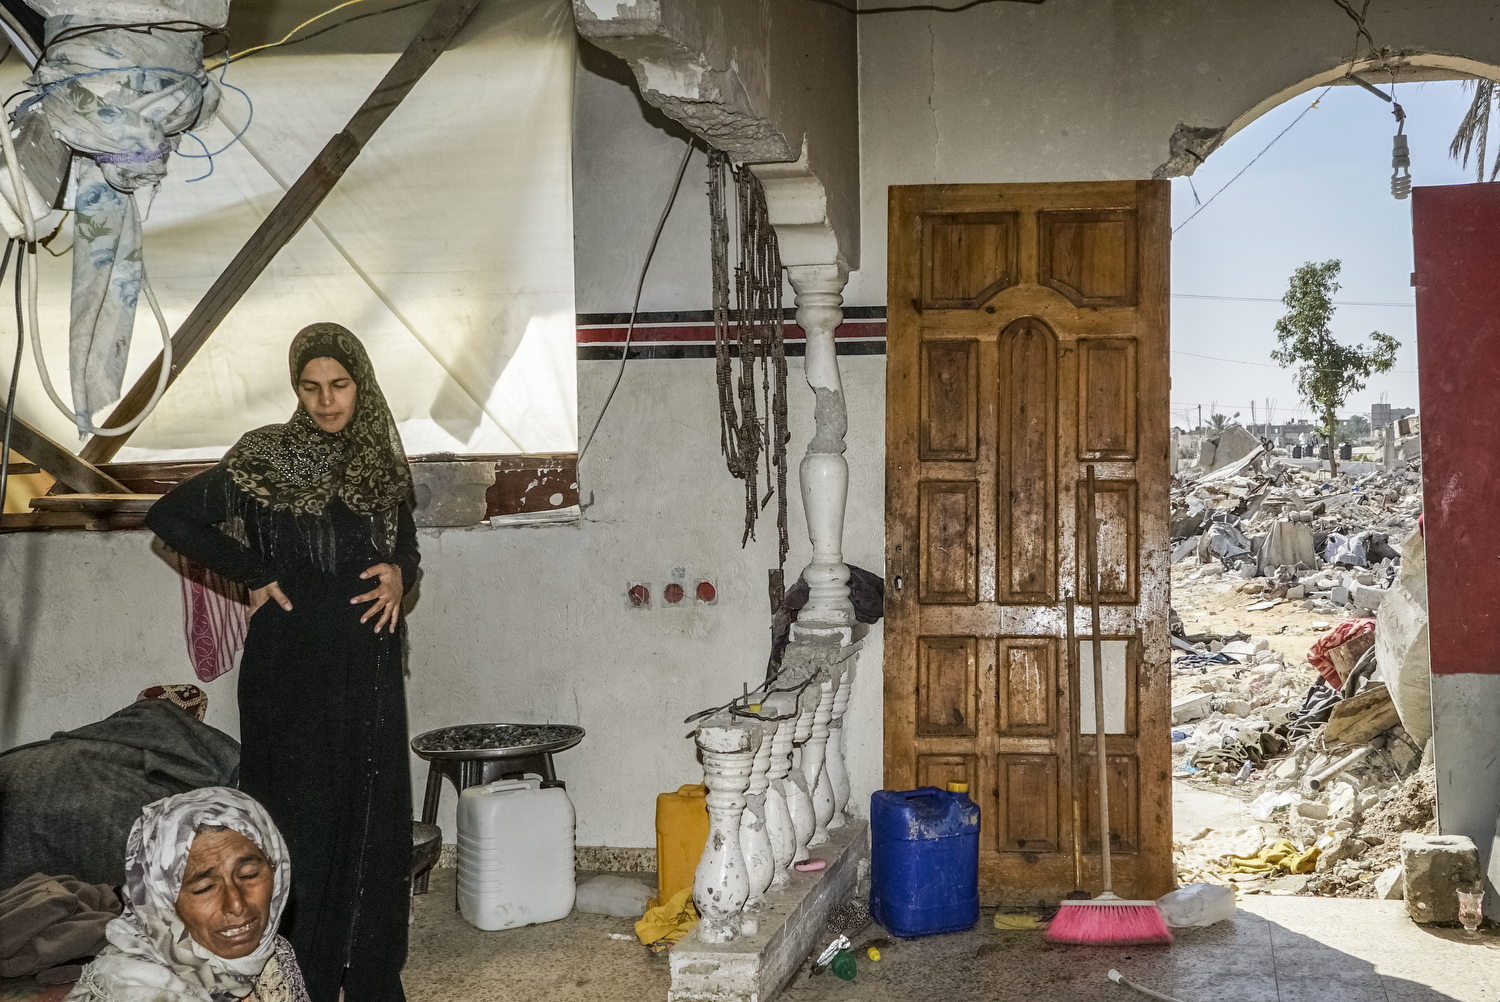 2014.  Gaza.  Palestine.The Najar family in their destroyed home.    Operation Protective Edge lasted from 8 July 2014 – 26 August 2014, killing 2,189 Palestinians of which 1,486 are believed to be civilians. 66 Israeli soldiers and 6 civilians were killed.  It's estimated that 4,564 rockets were fired at Israel by Palestinian militants.